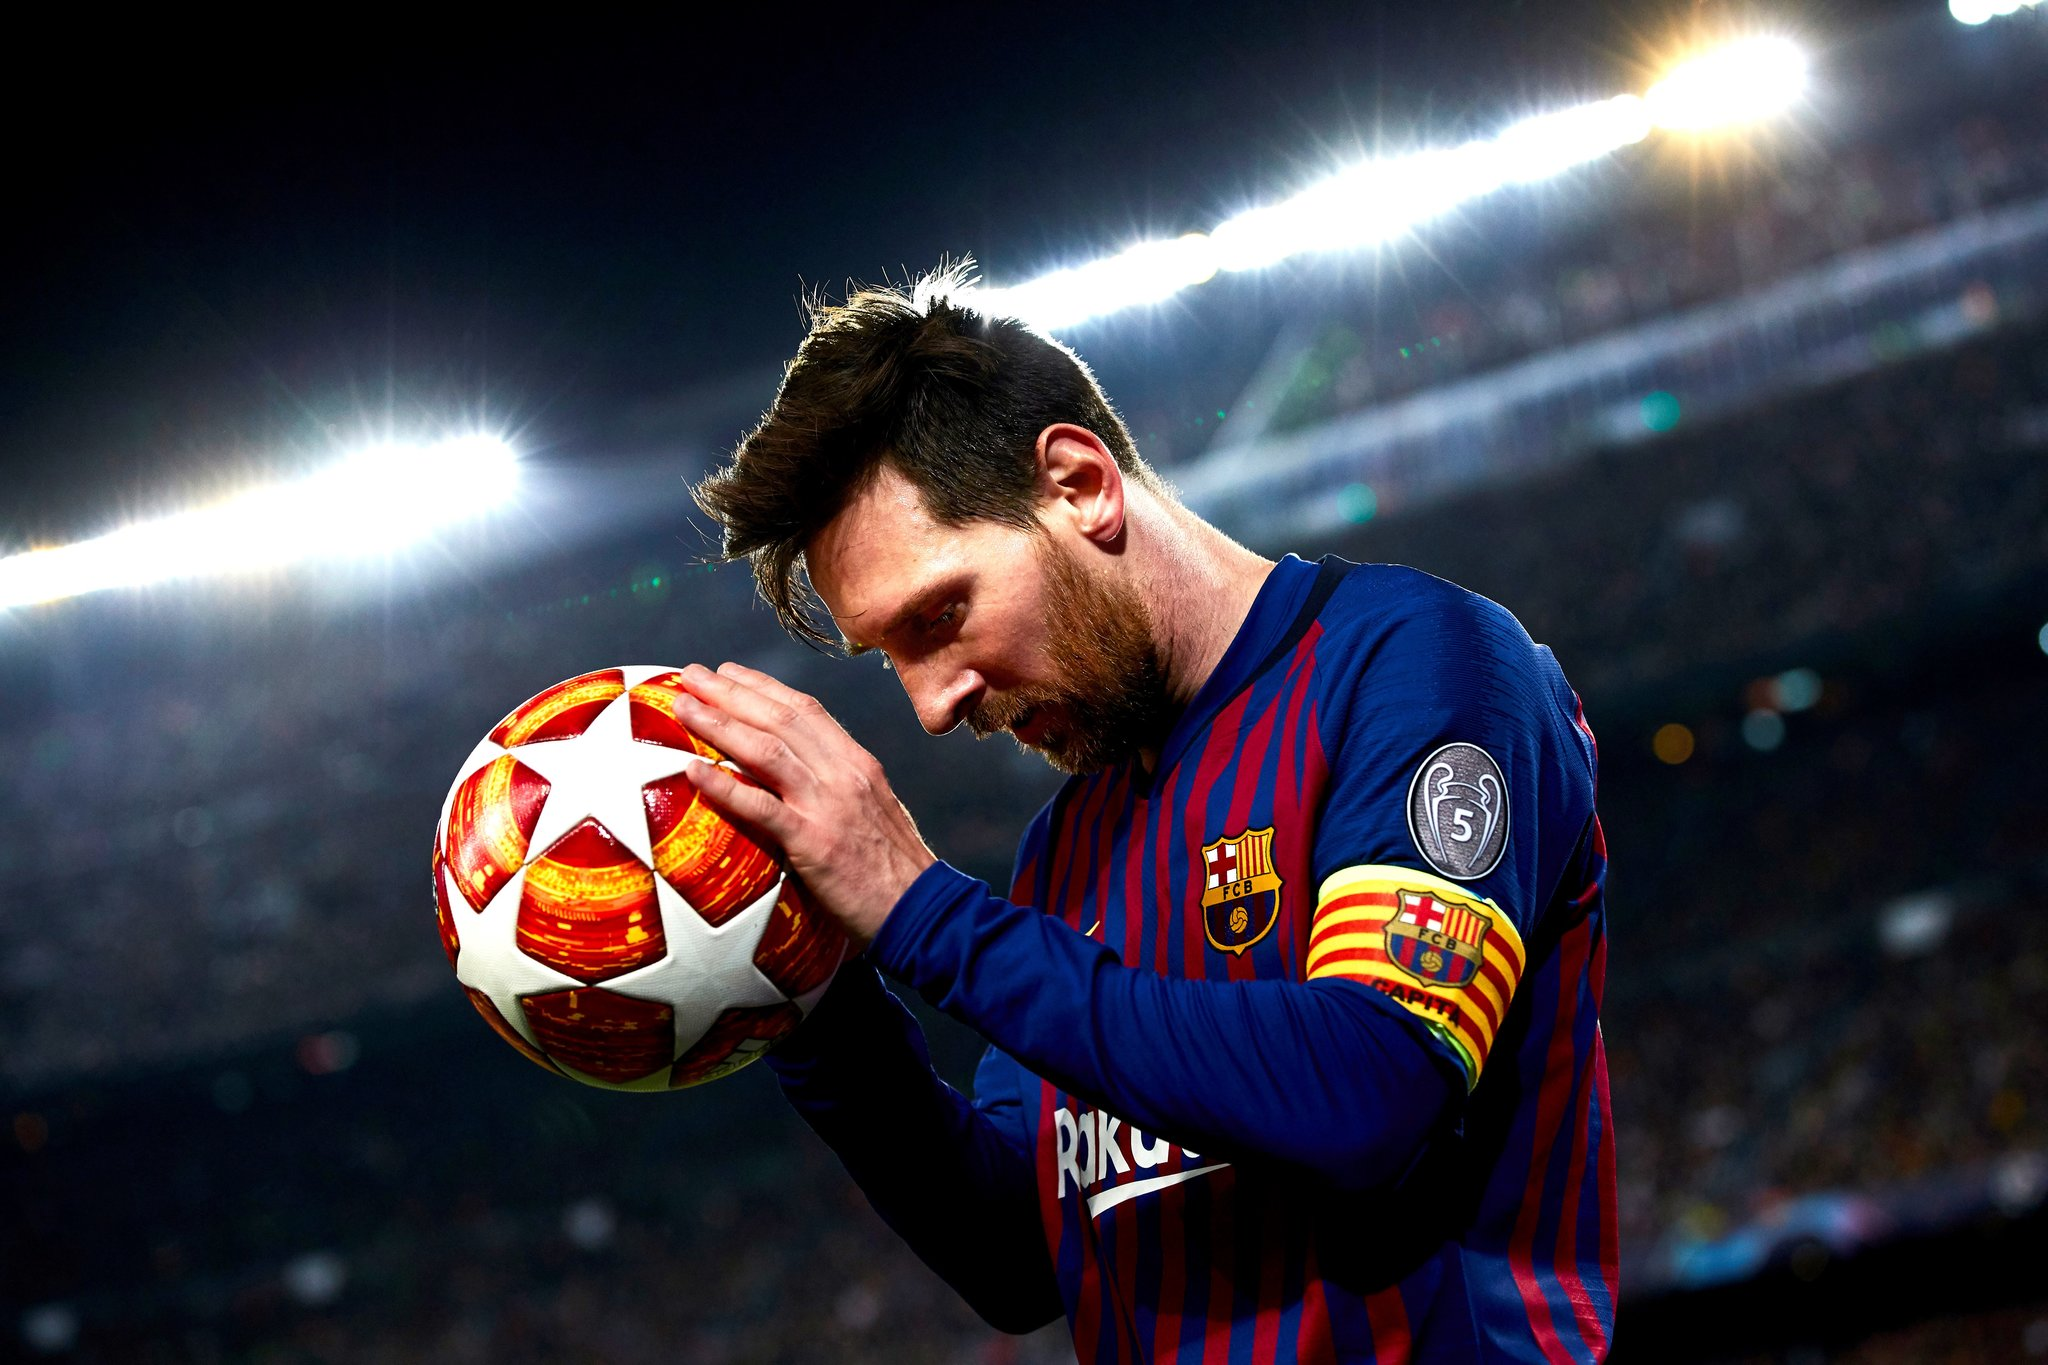 Messi show his other face during extra time